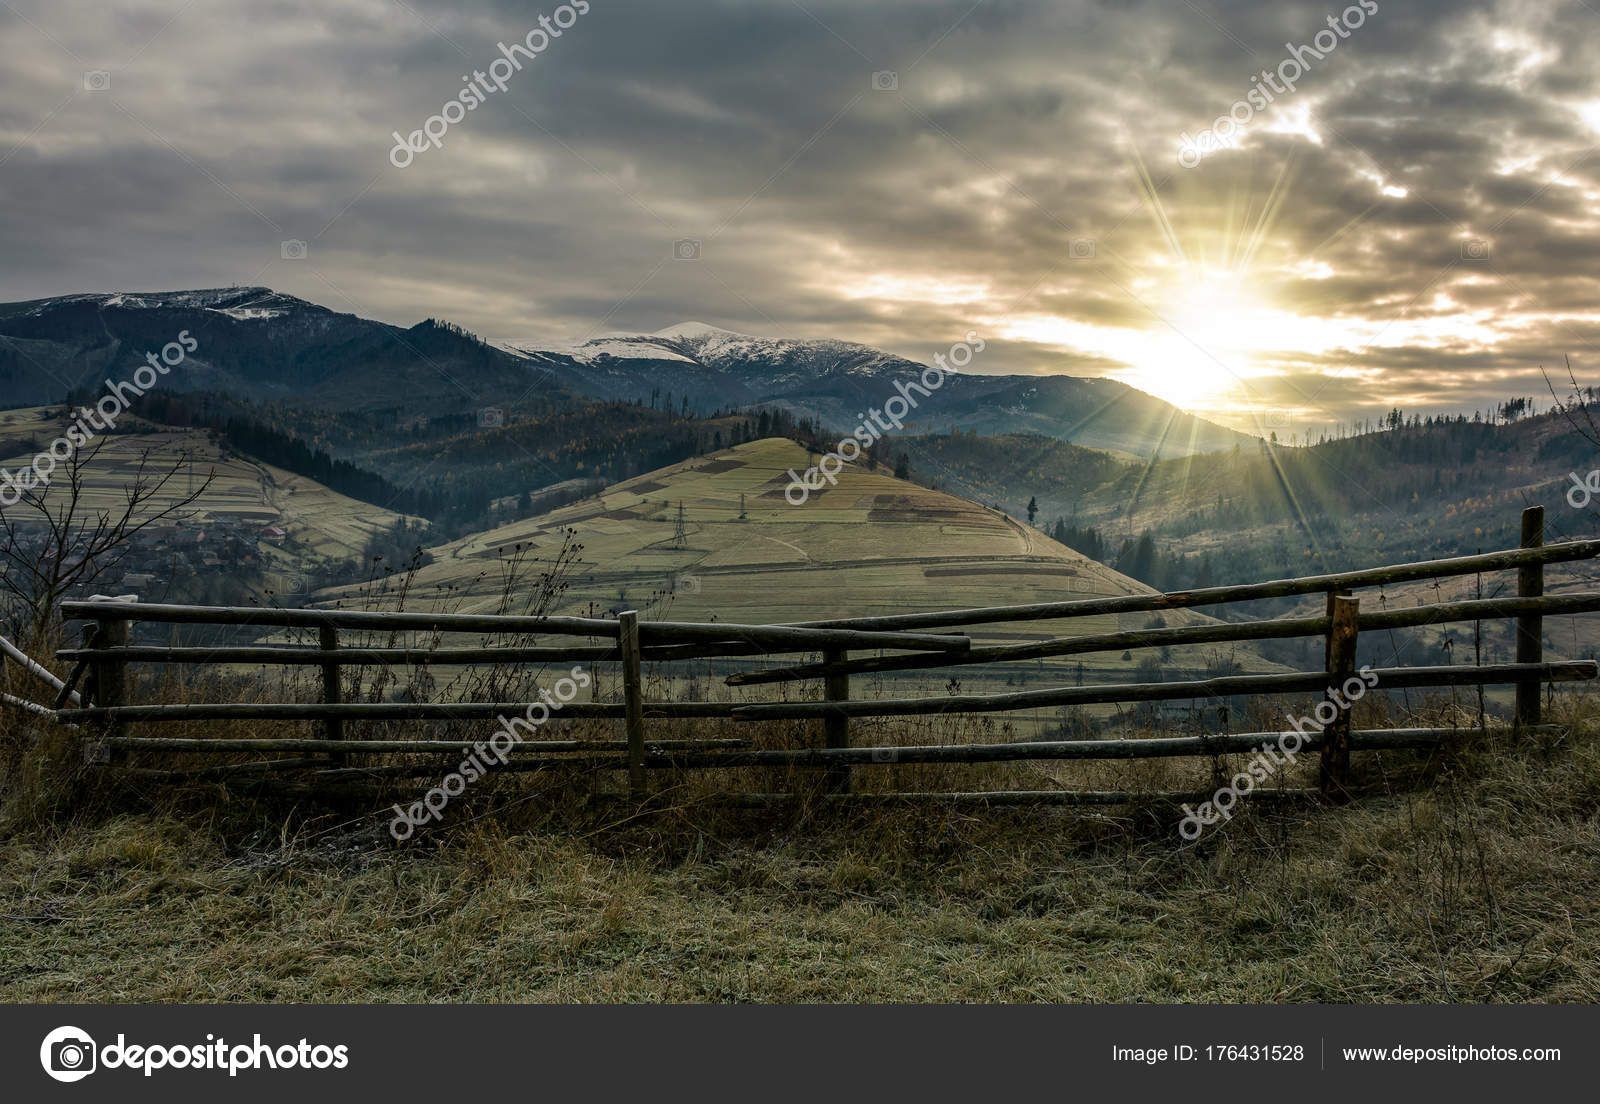 Zaun Am Hang Im Spaten Herbst Duster Sunrise Stockfoto C Pellinni